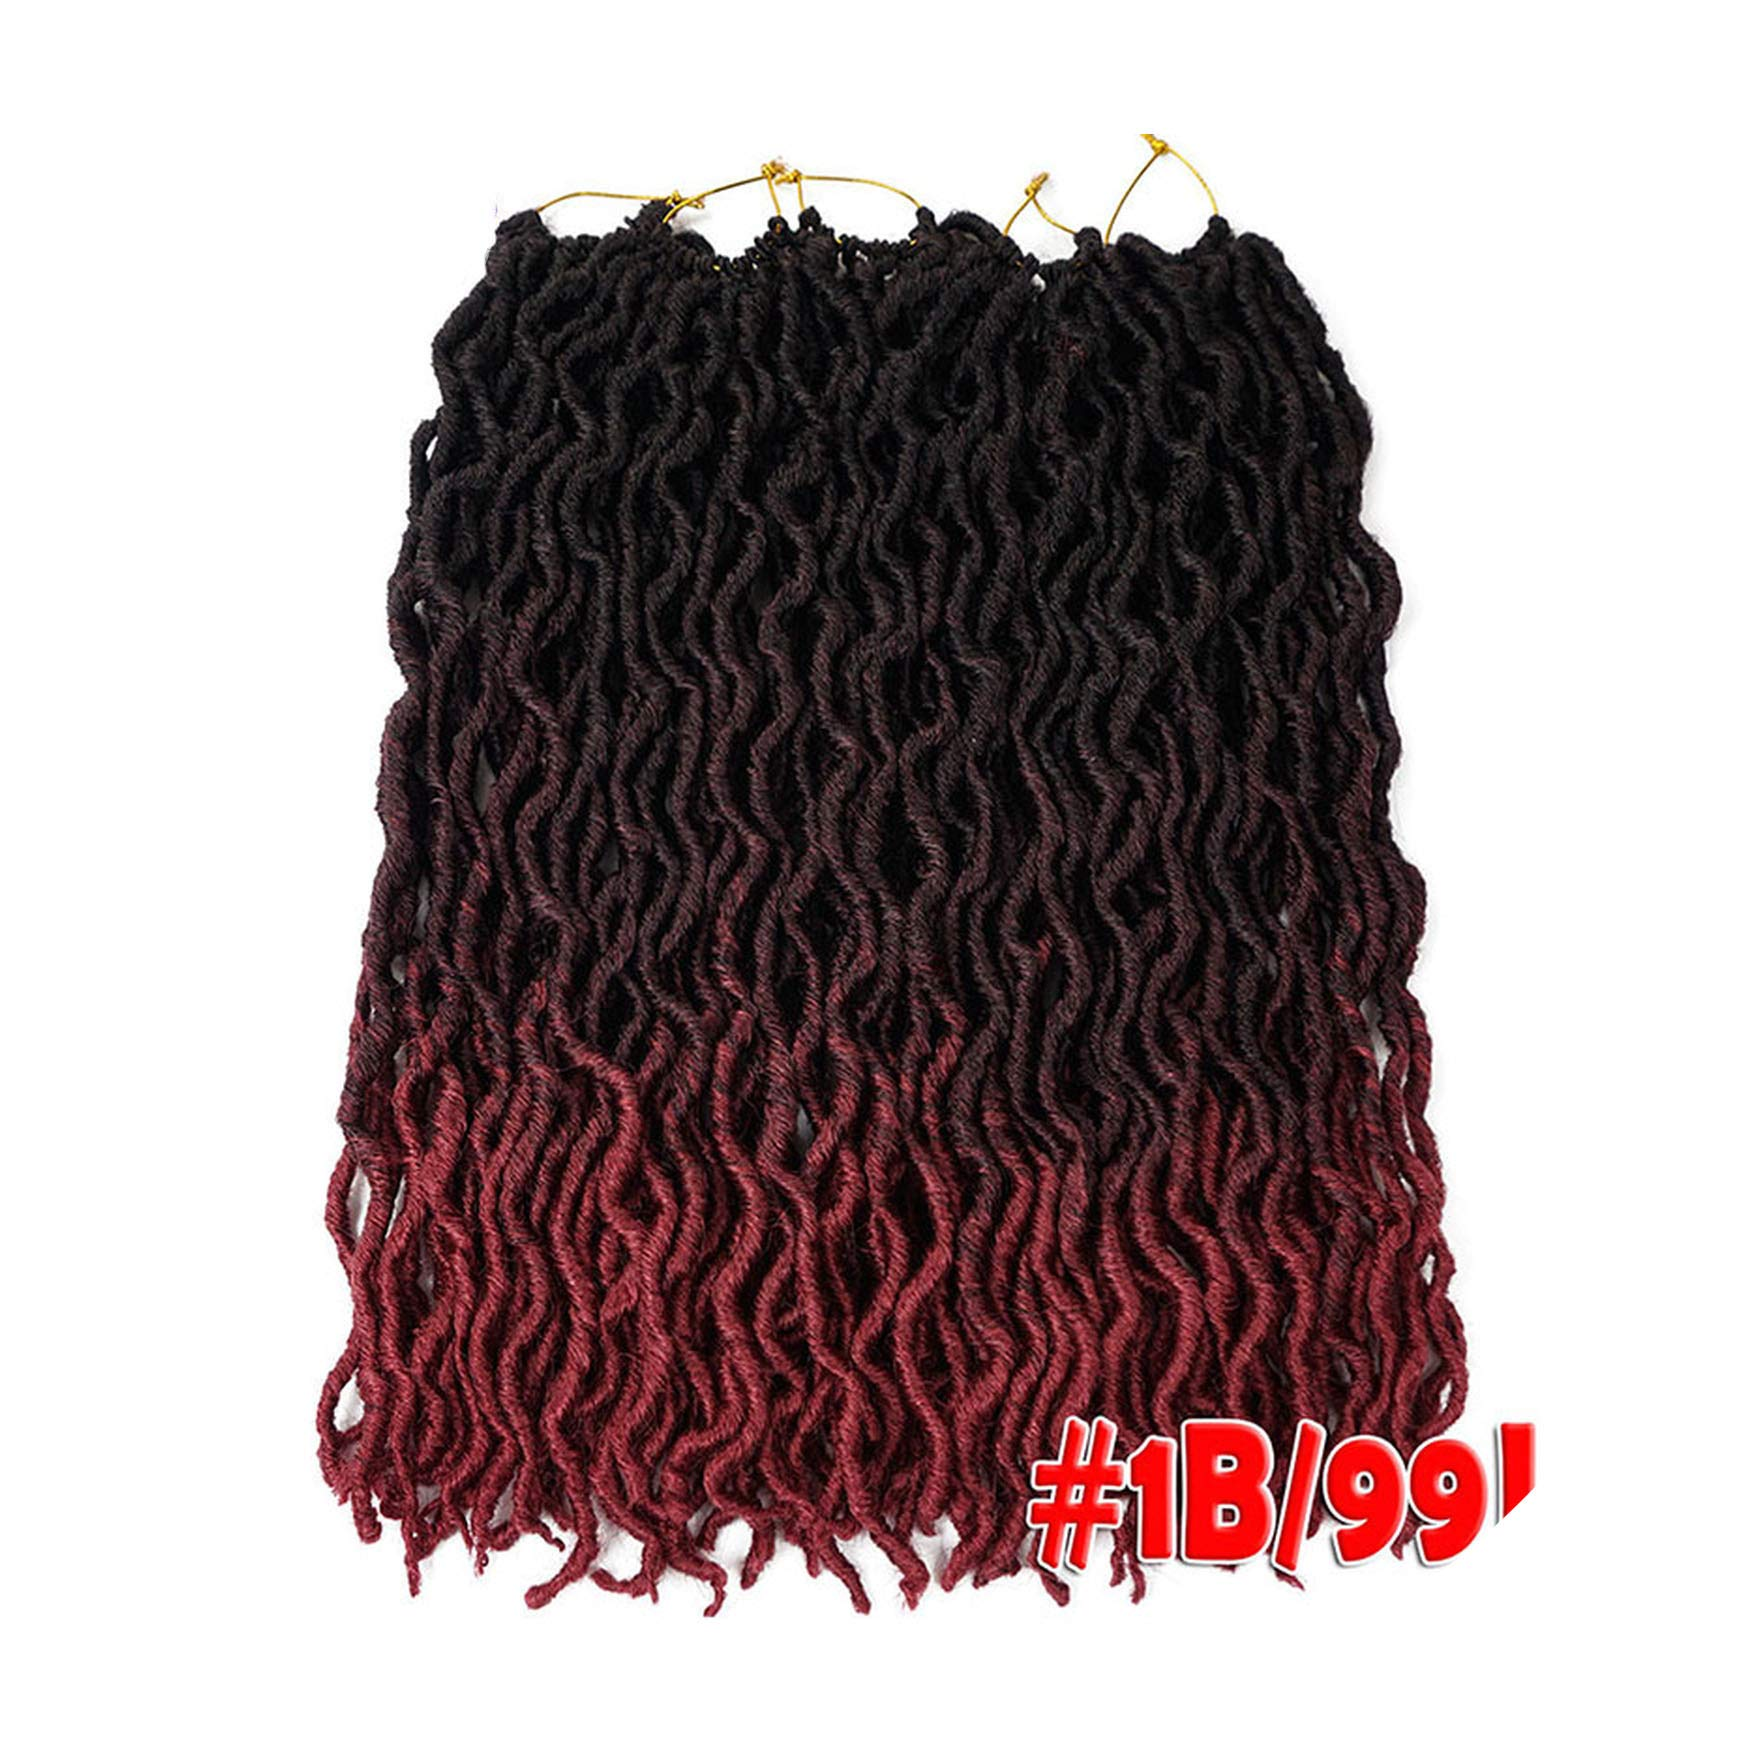 Goddess Faux Locs Crochet Hair 20Inch Soft Natural Synthetic Crochet Braids Hair Extensions Pre Looped Locs Bulk,6/613,20Inches,9 Packs by LQ21